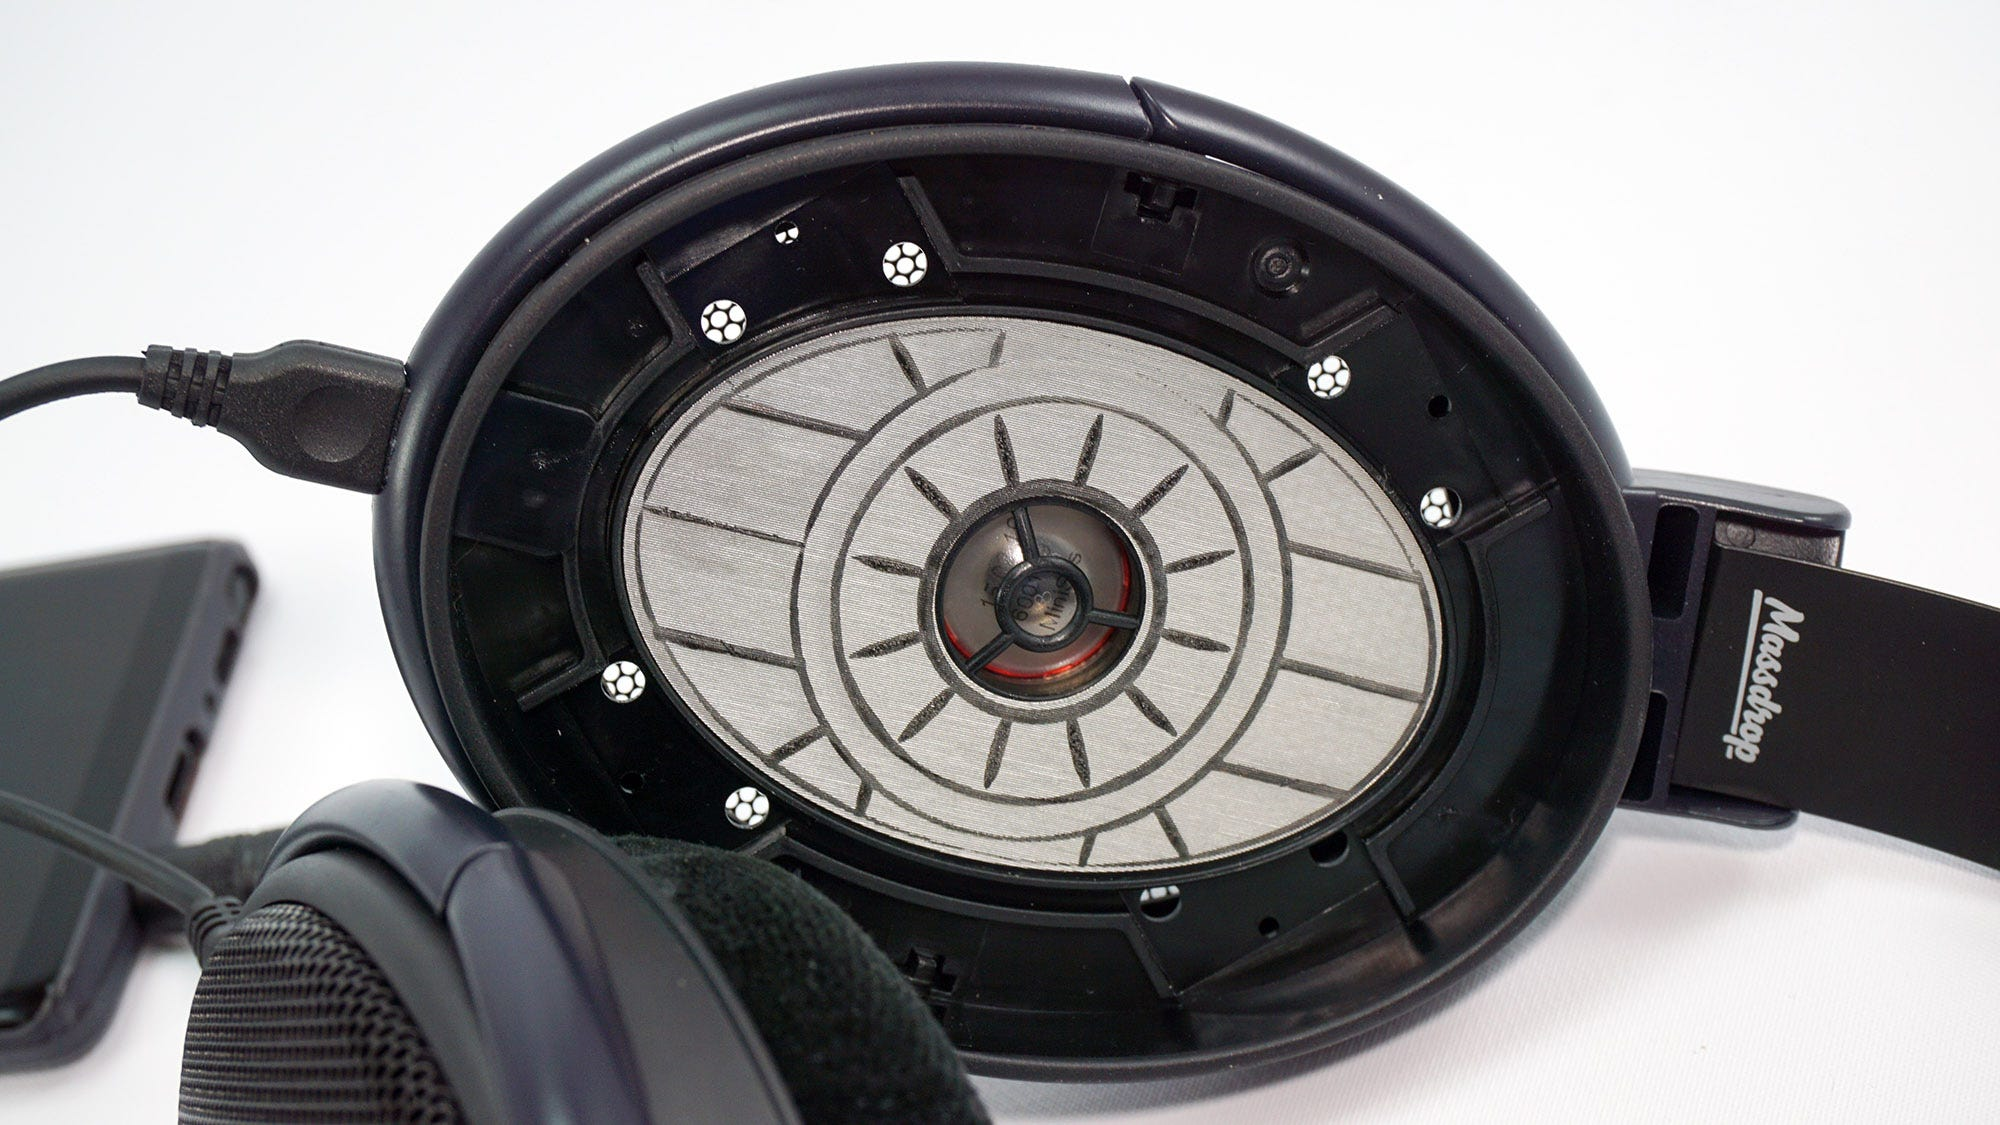 The exposed drivers of the HD 6XX